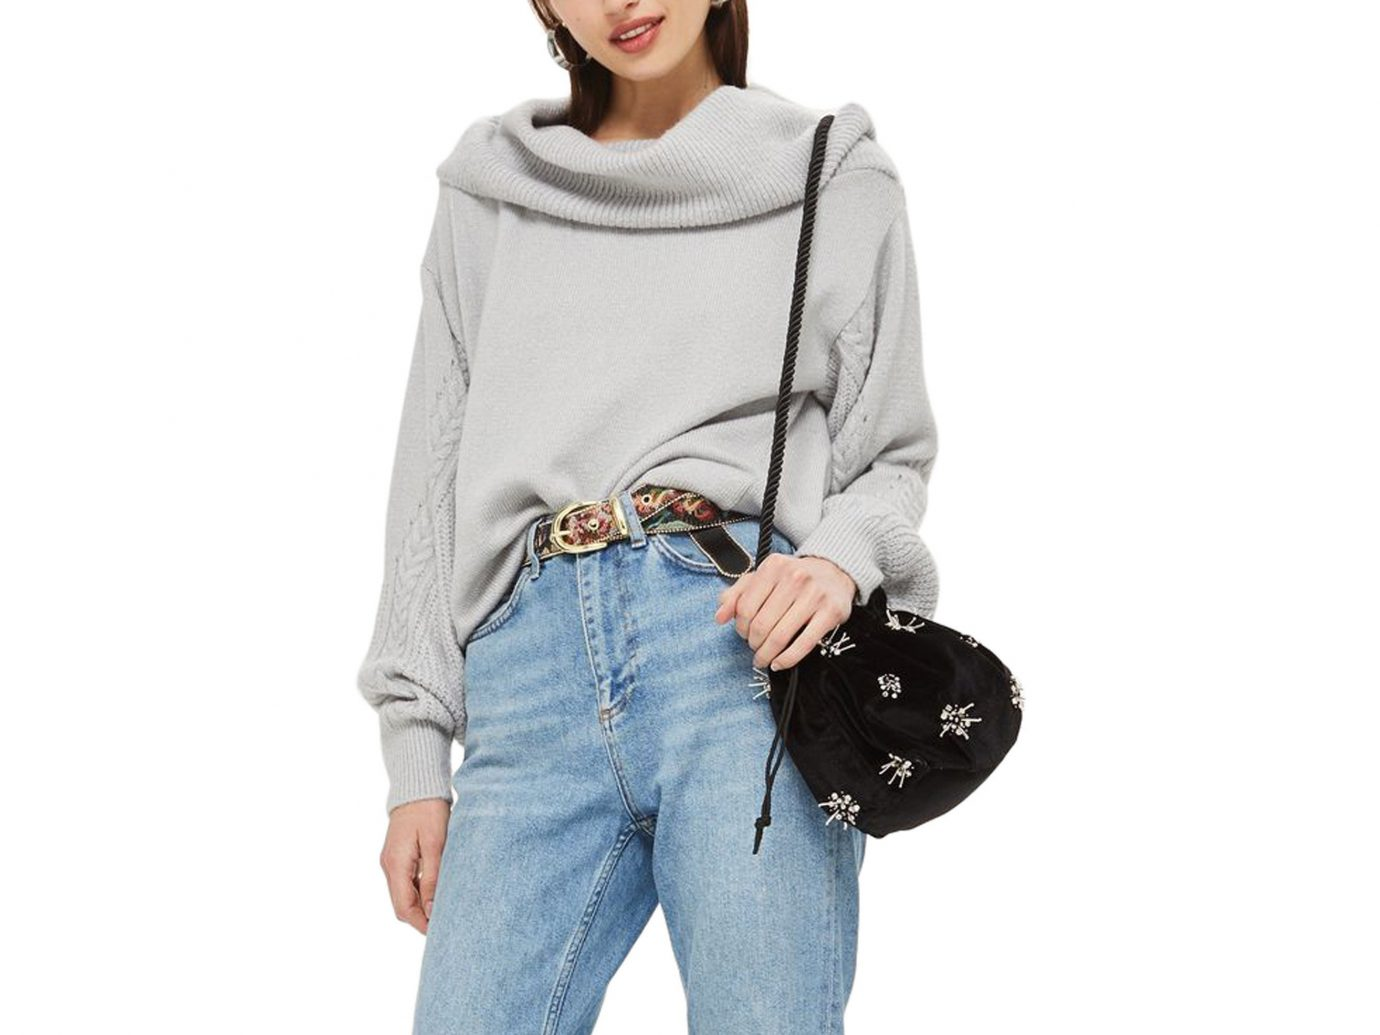 Style + Design Travel Shop person clothing bag shoulder joint sleeve wearing posing pocket standing handbag neck waist zipper jeans product